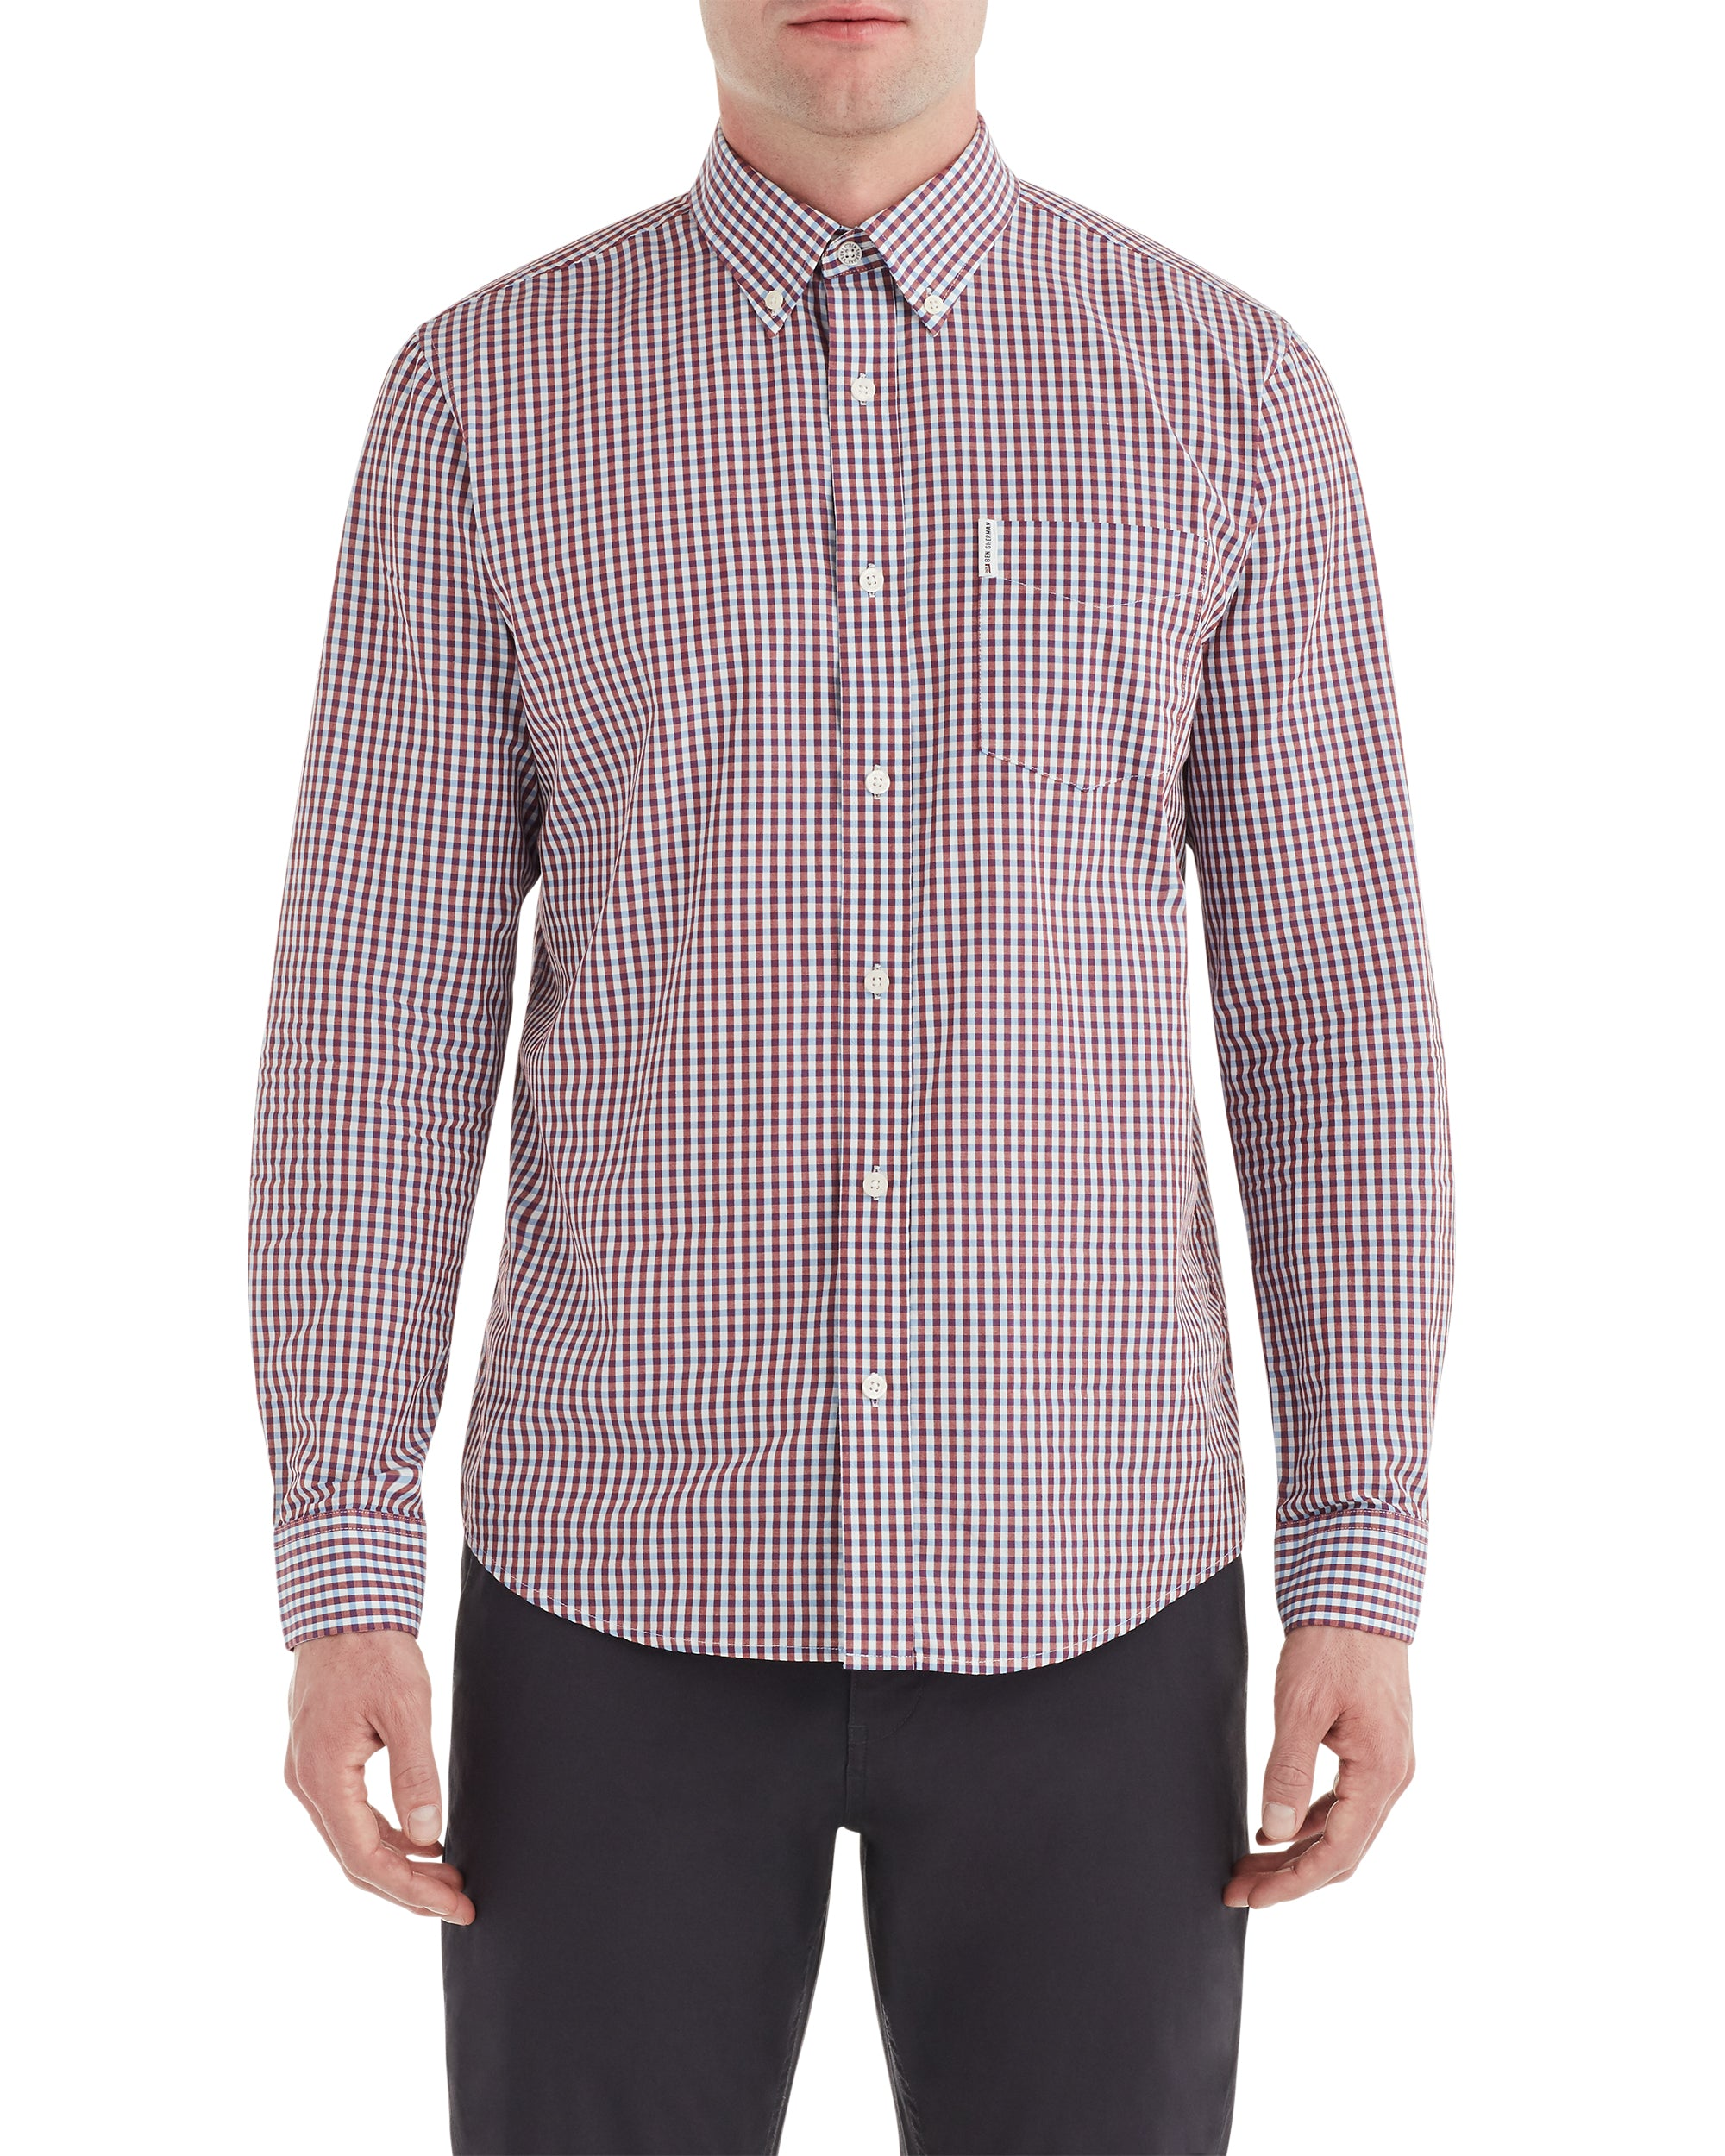 Long-Sleeve Classic Gingham Shirt - Sky